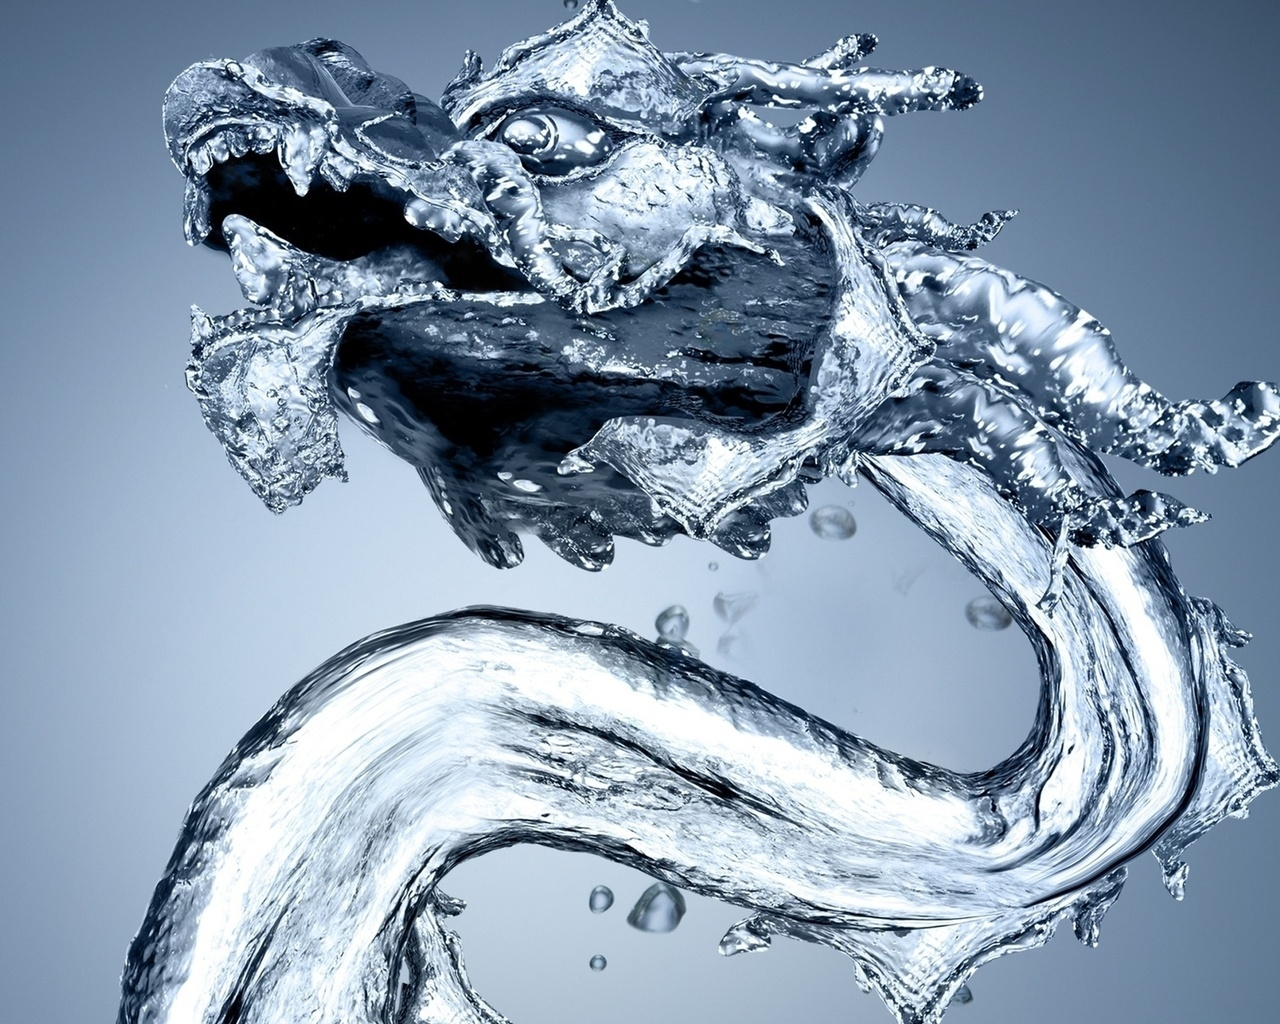 Water Dragon for 1280 x 1024 resolution